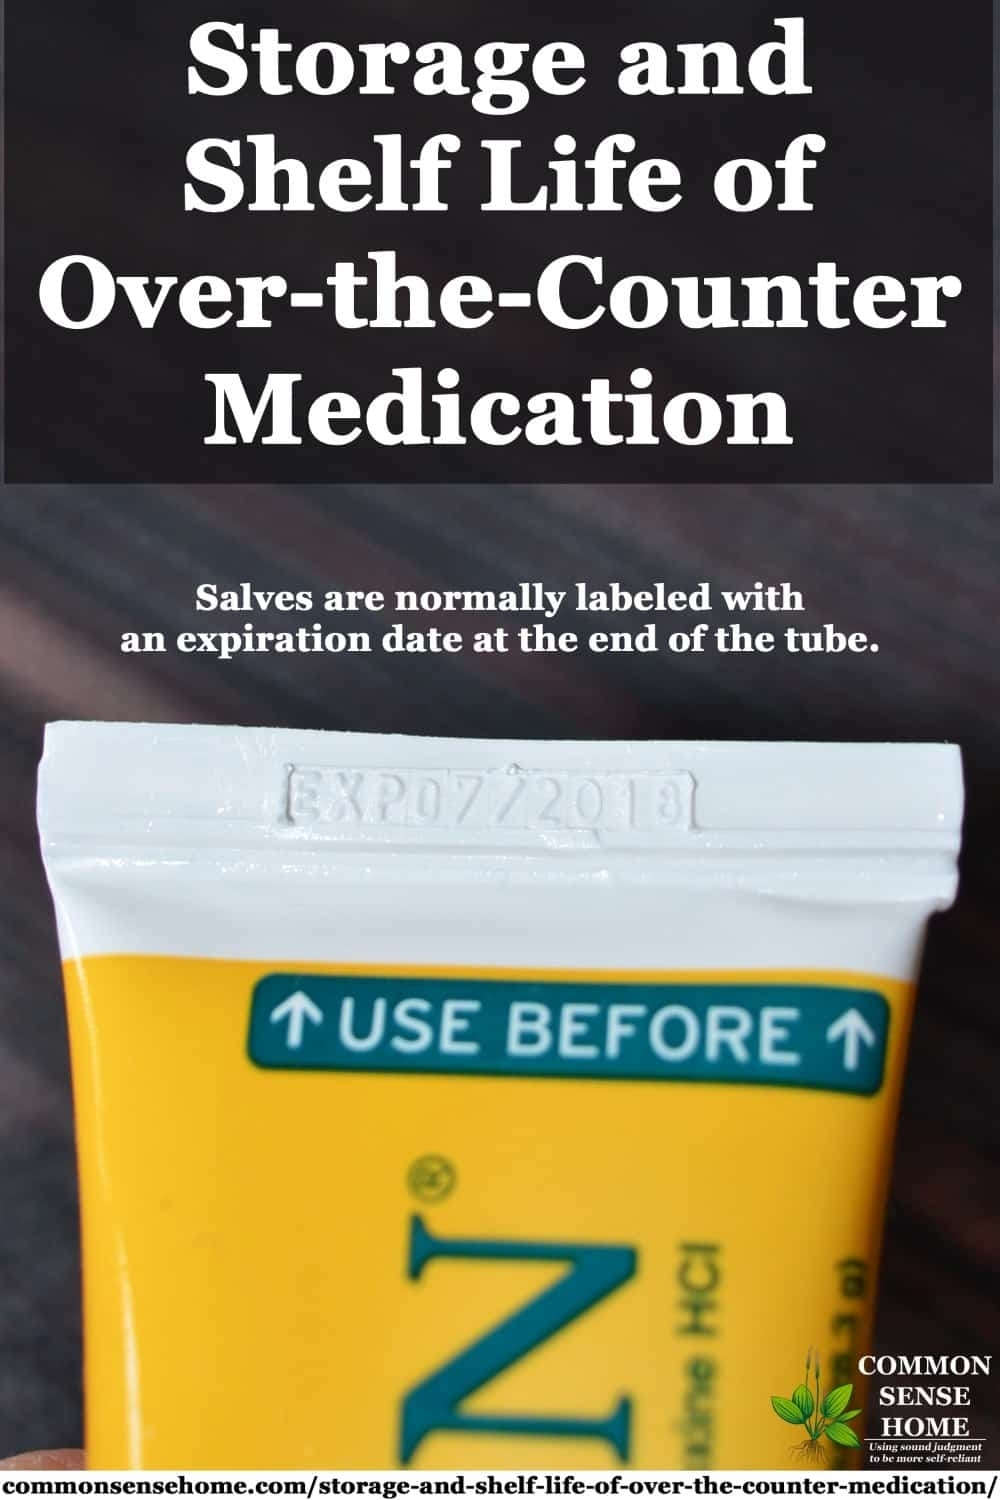 Storage And Shelf Life Of Over-The-Counter Medication